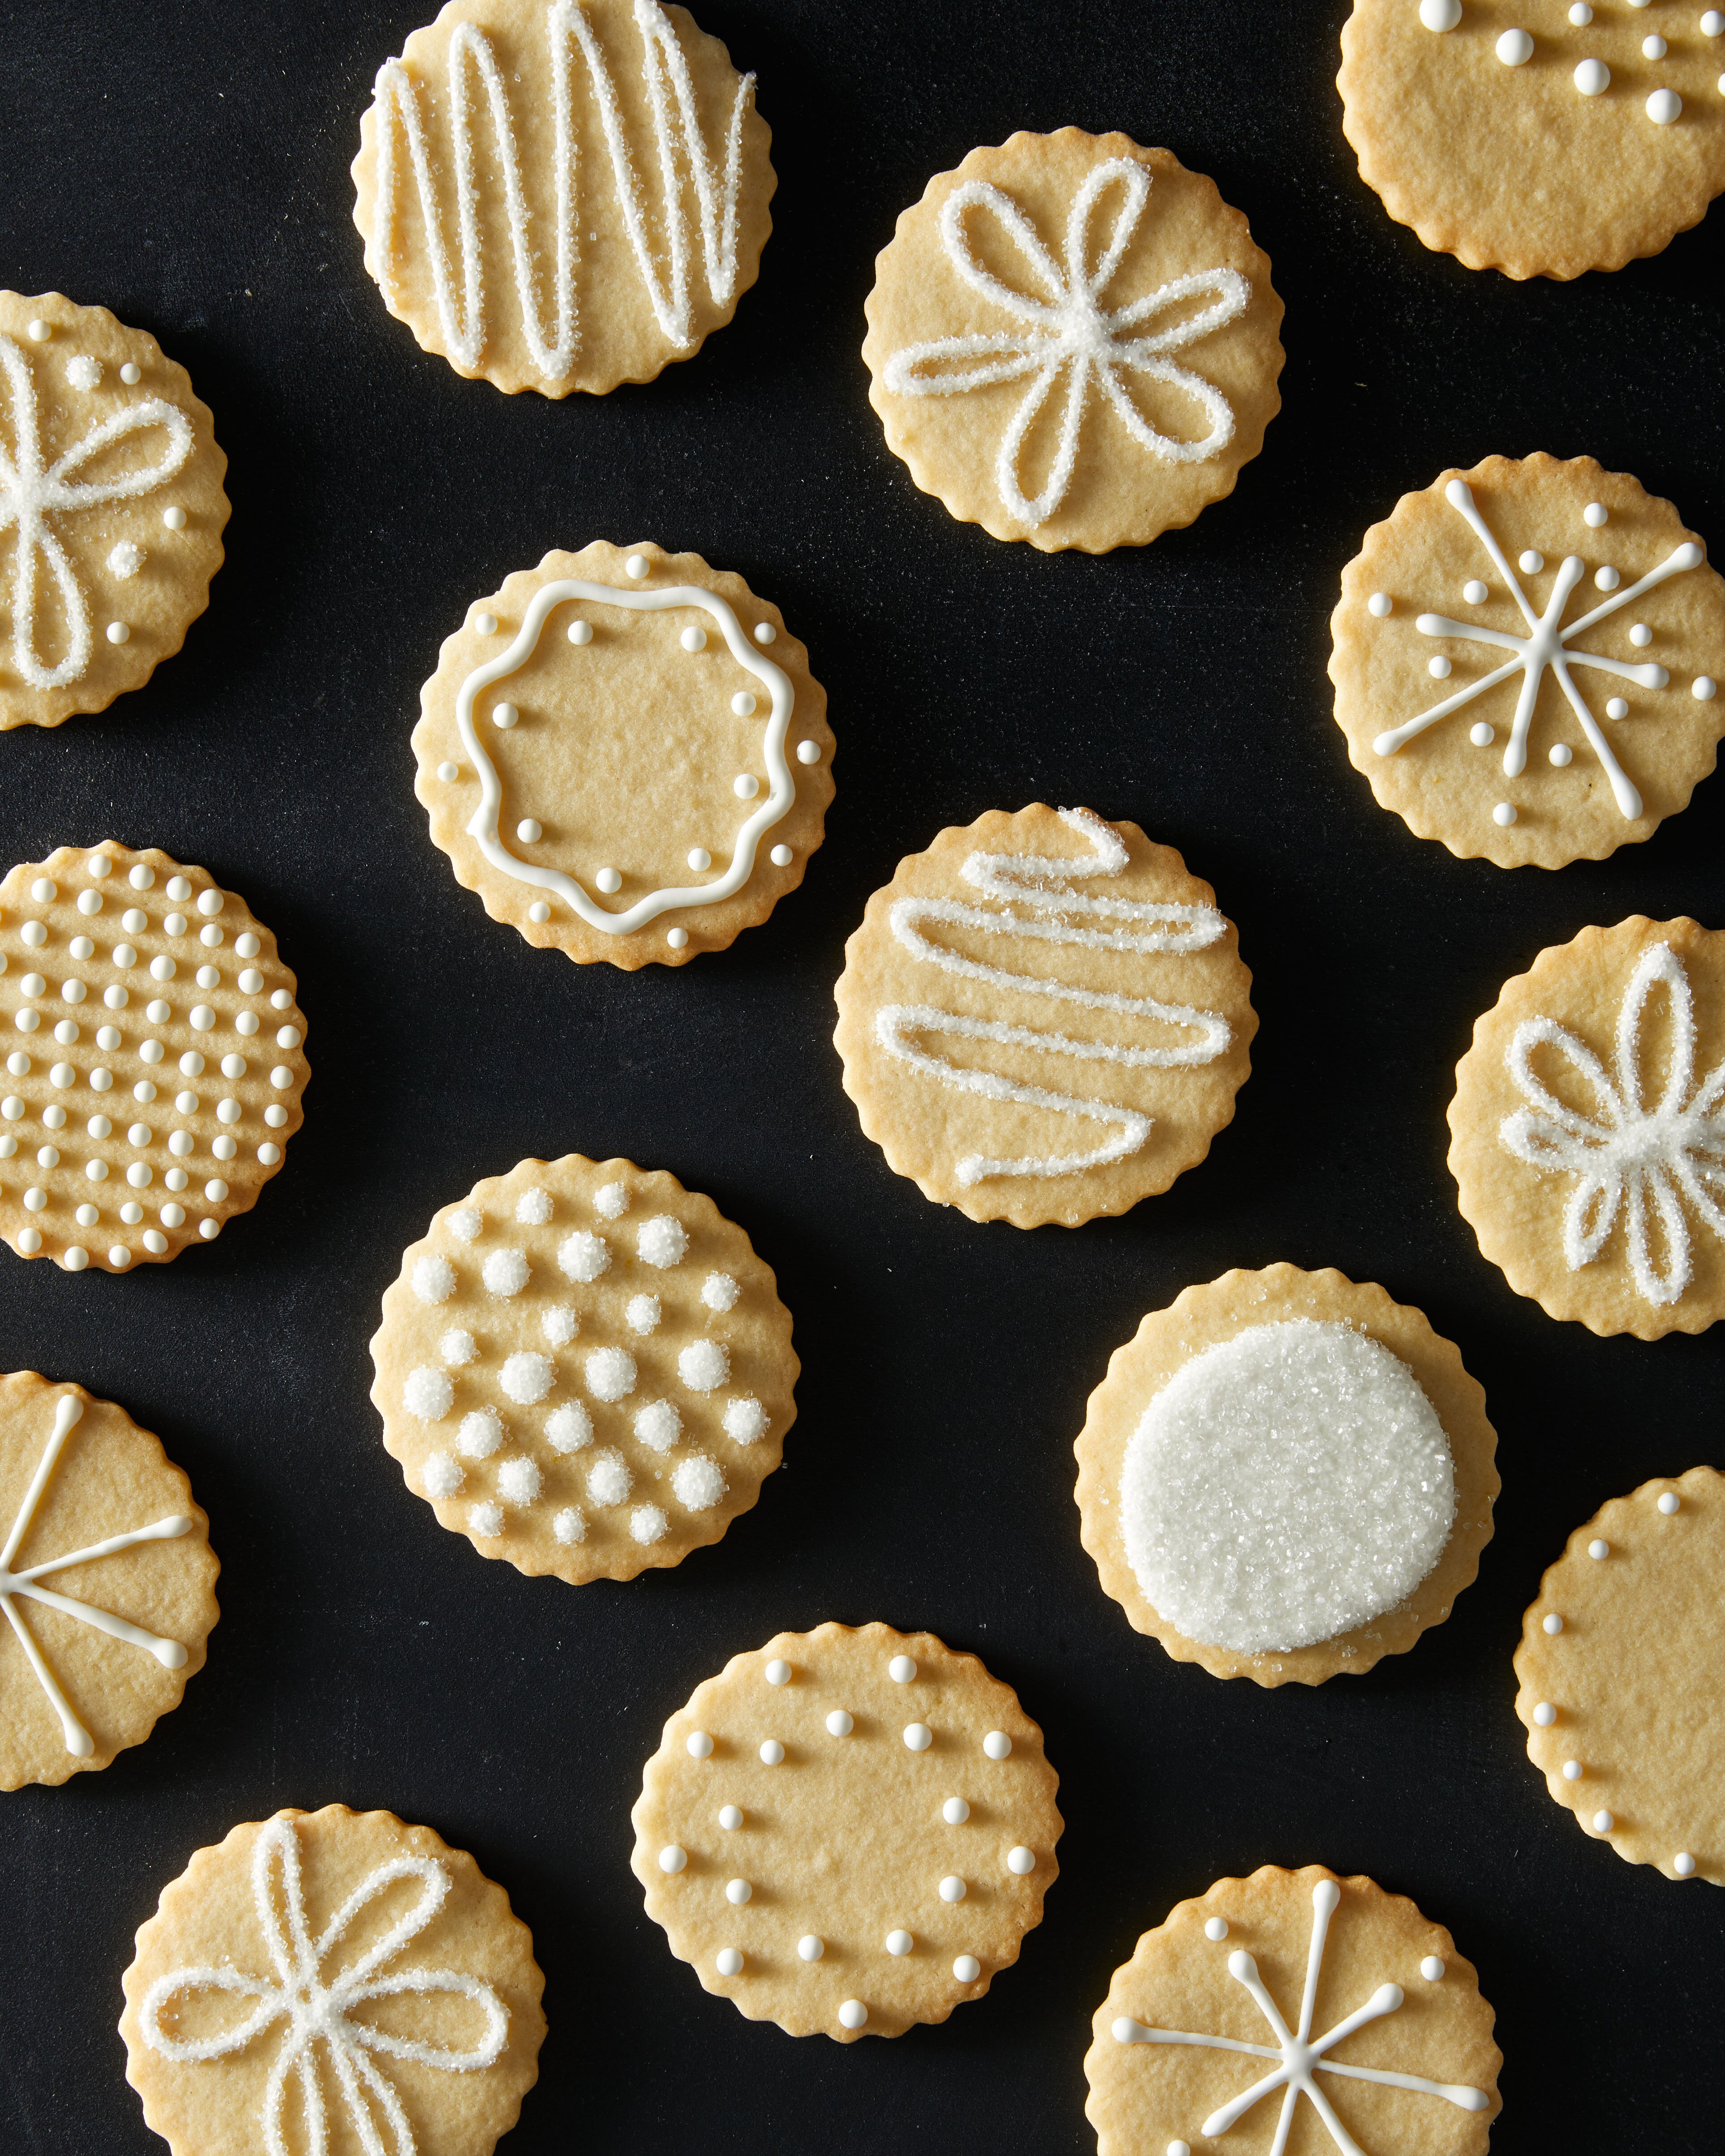 OUR FAVORITE CHRISTMAS COOKIE RECIPES FROM BISCOTTI TO